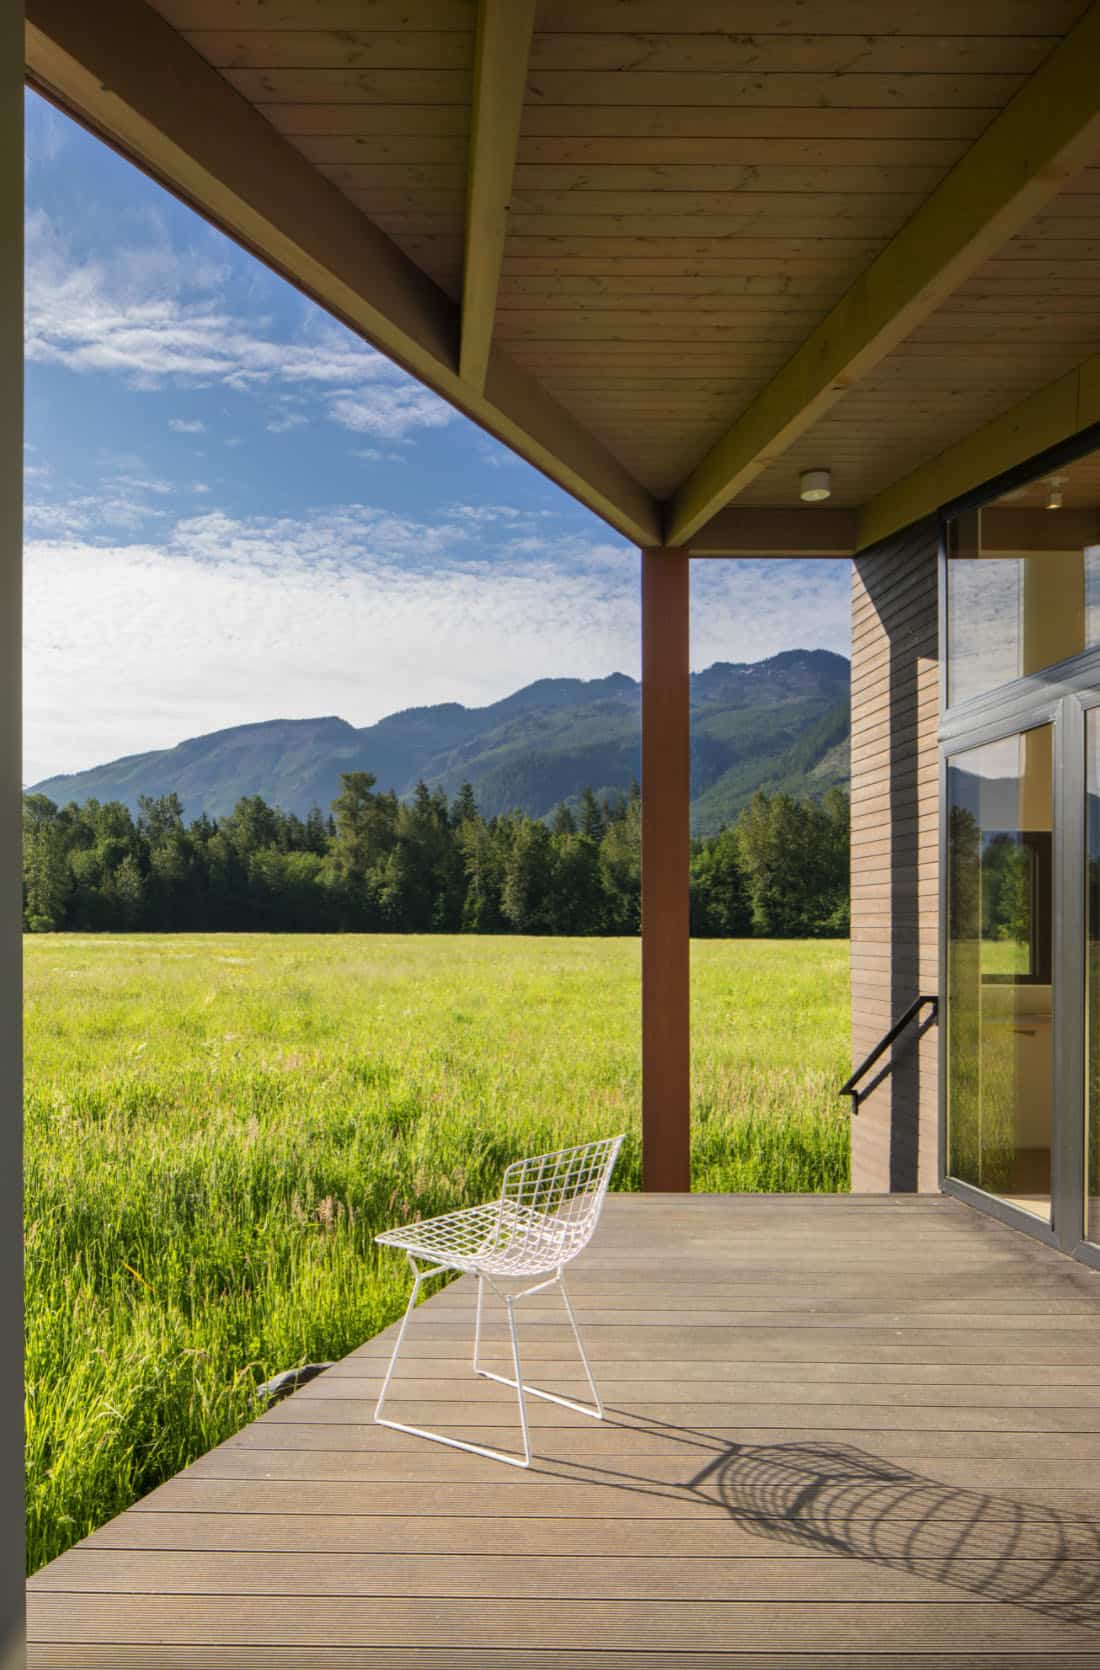 midcentury-exterior-porch-with-view